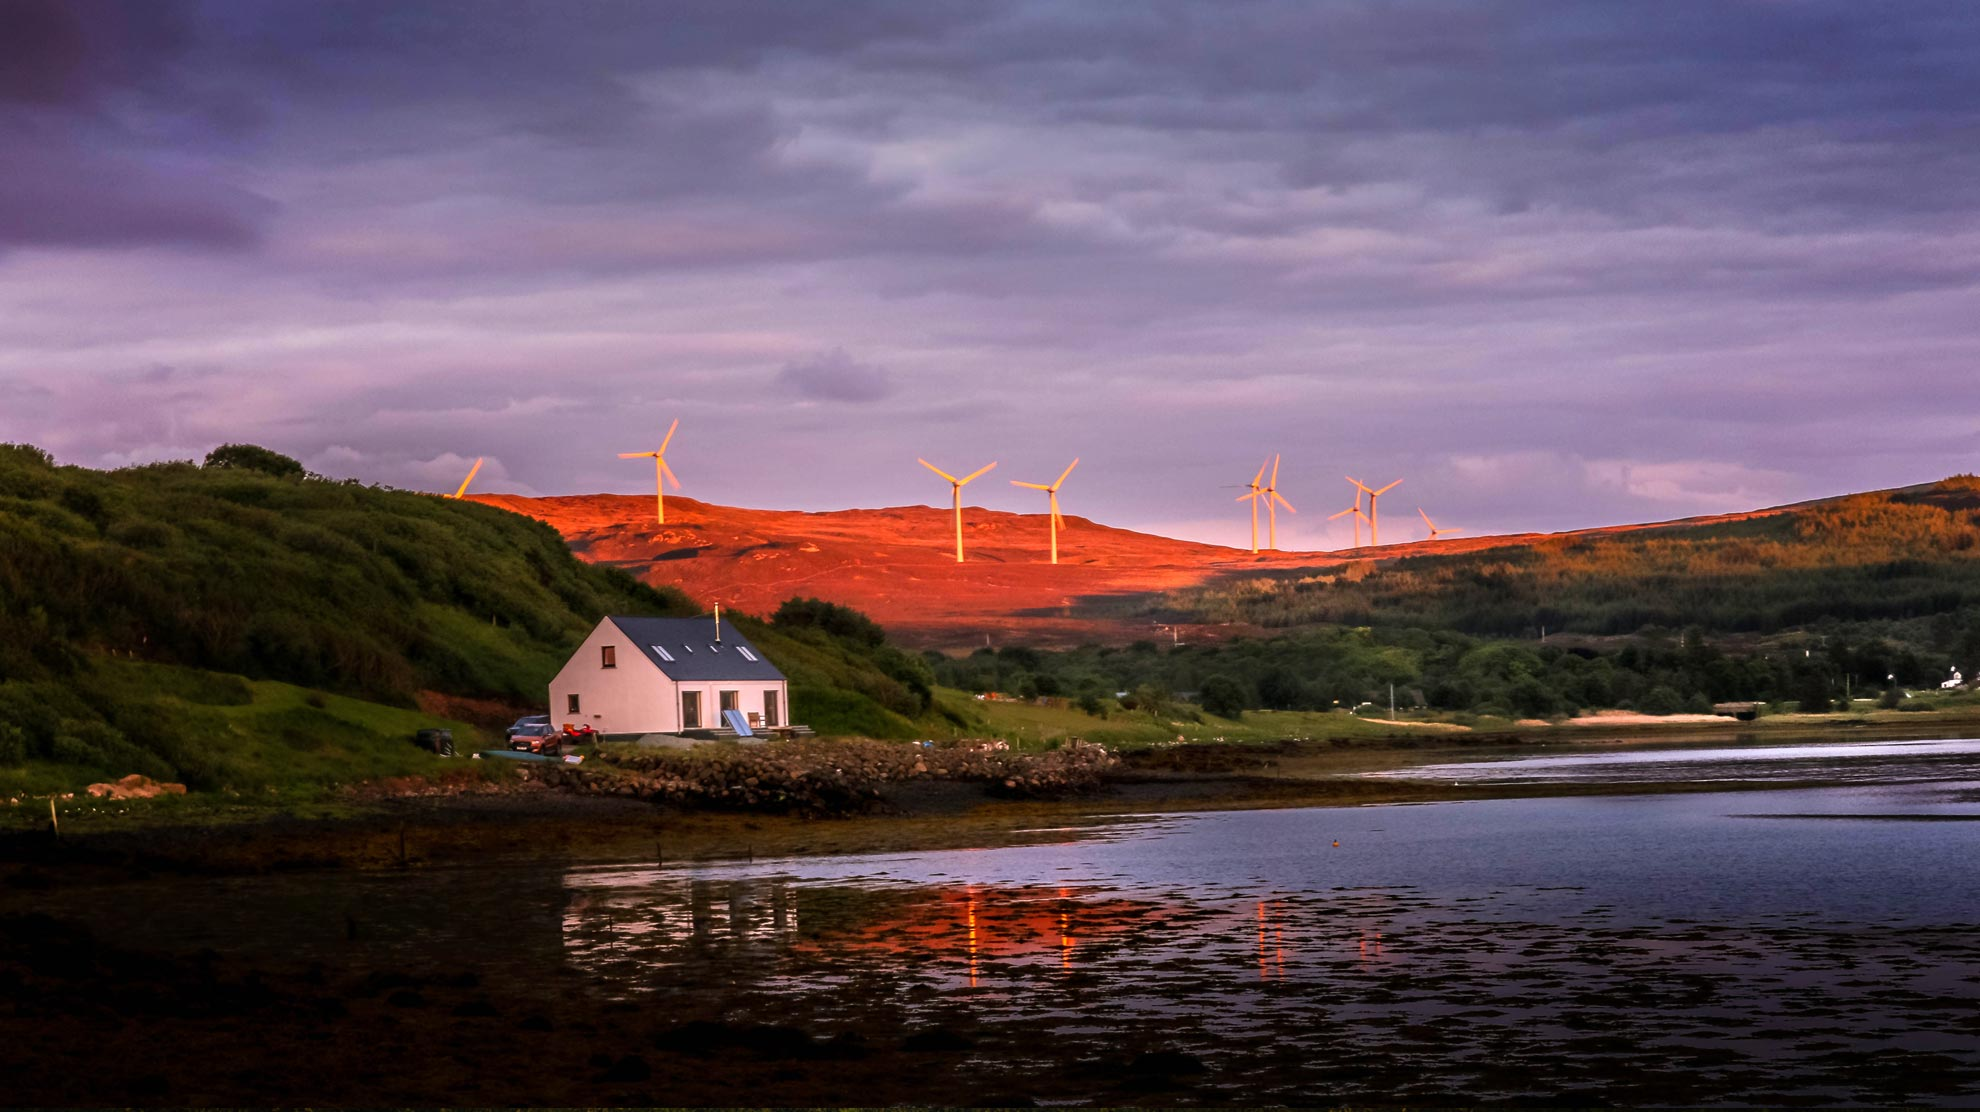 Scottish government ramps up plans for wind power